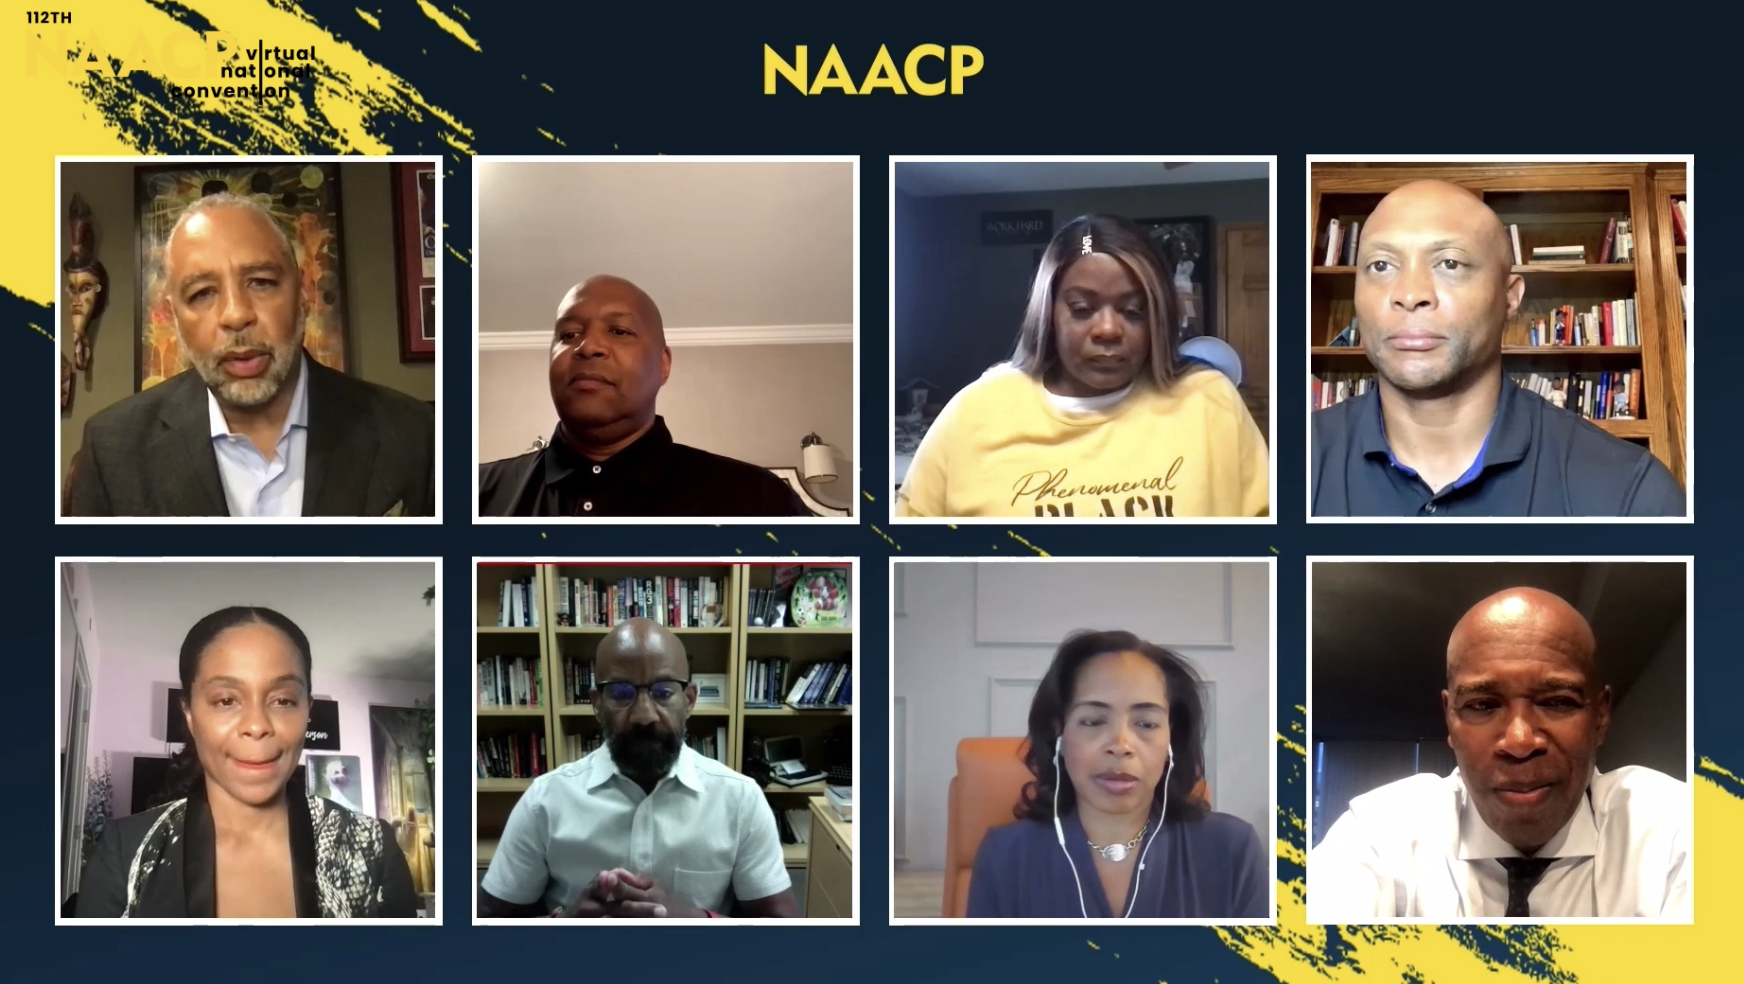 naacp btwn the lines